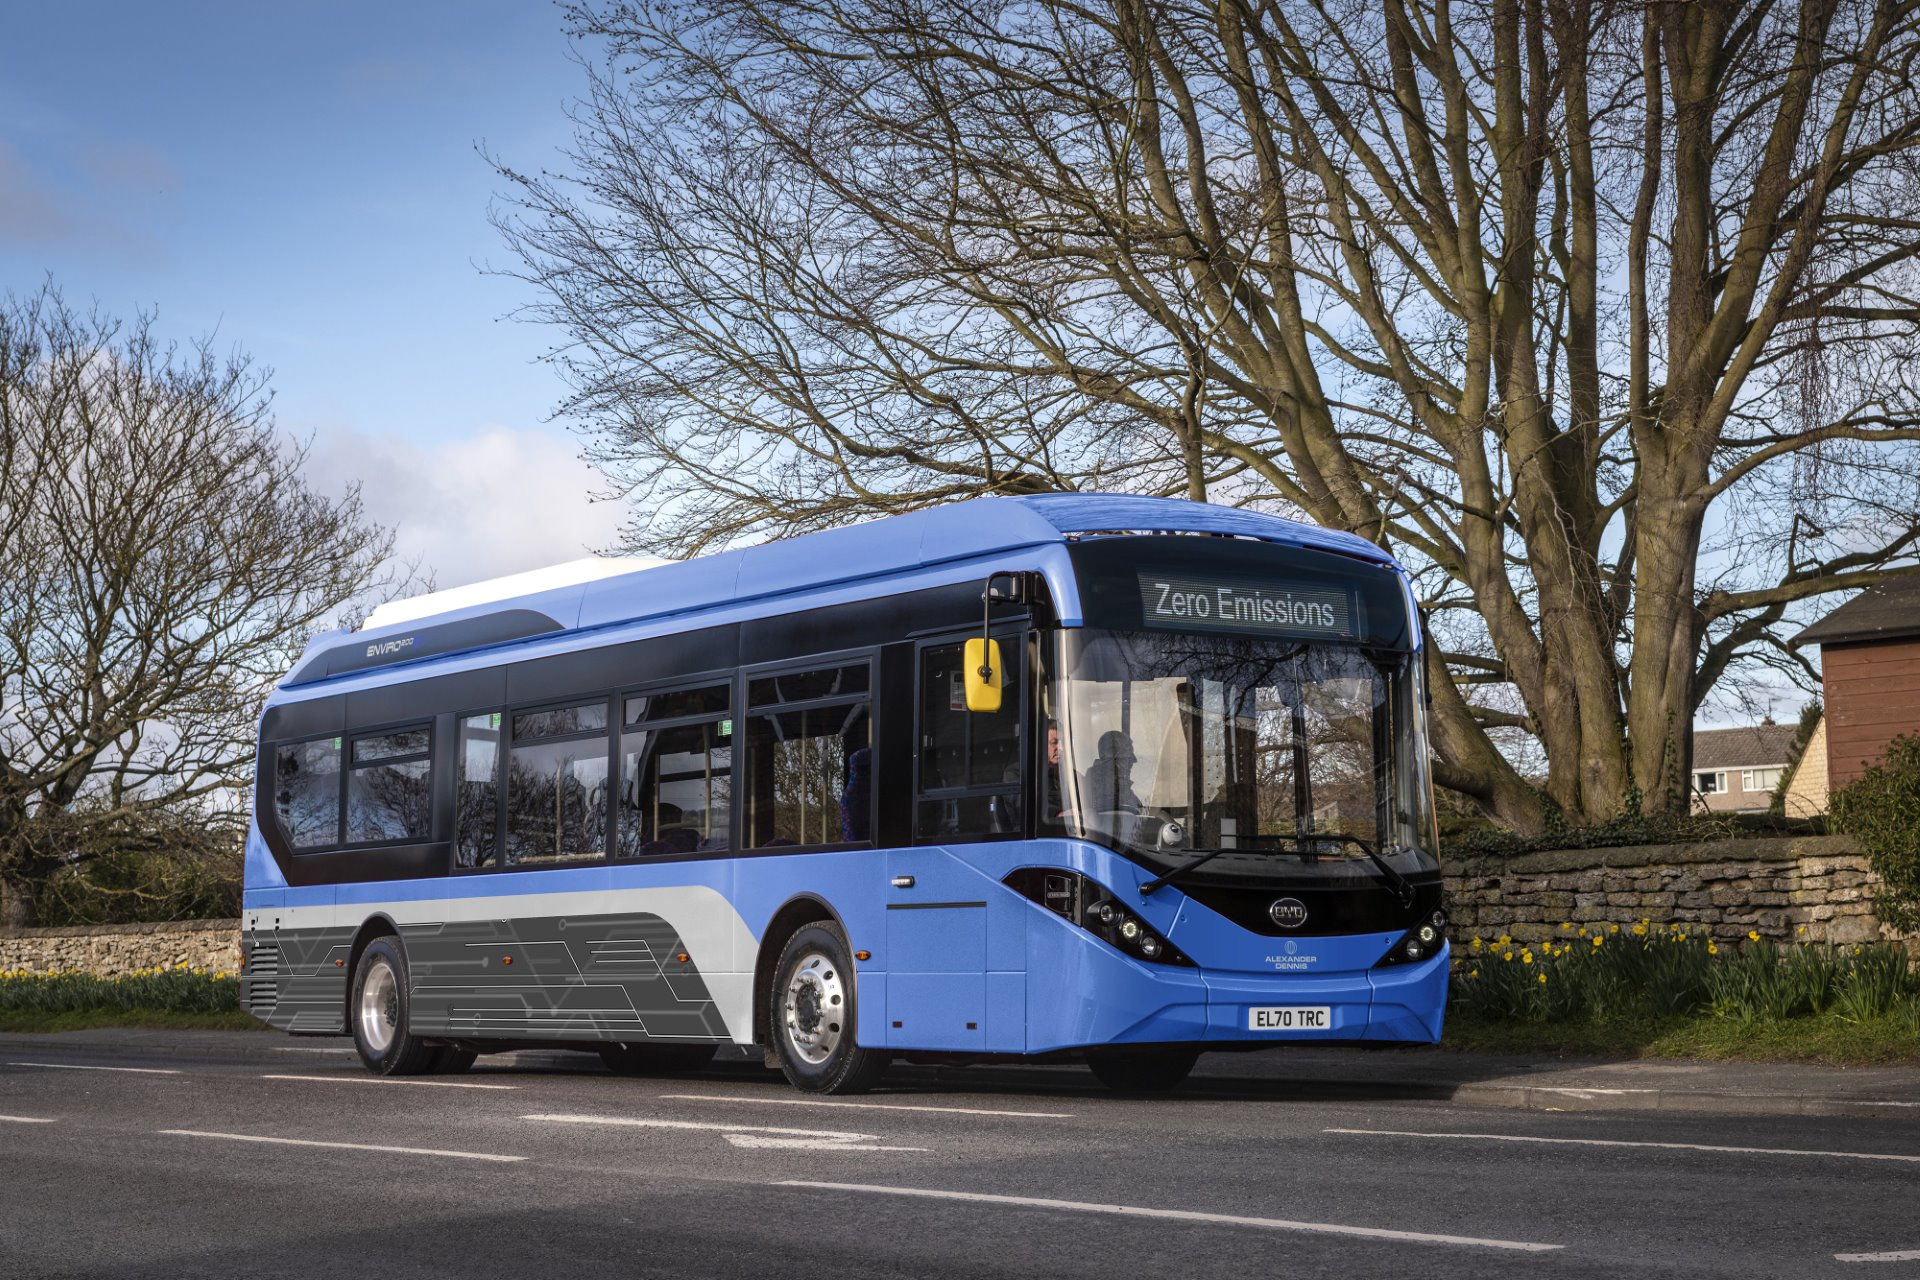 ADL bus models to be built in Australia under licence